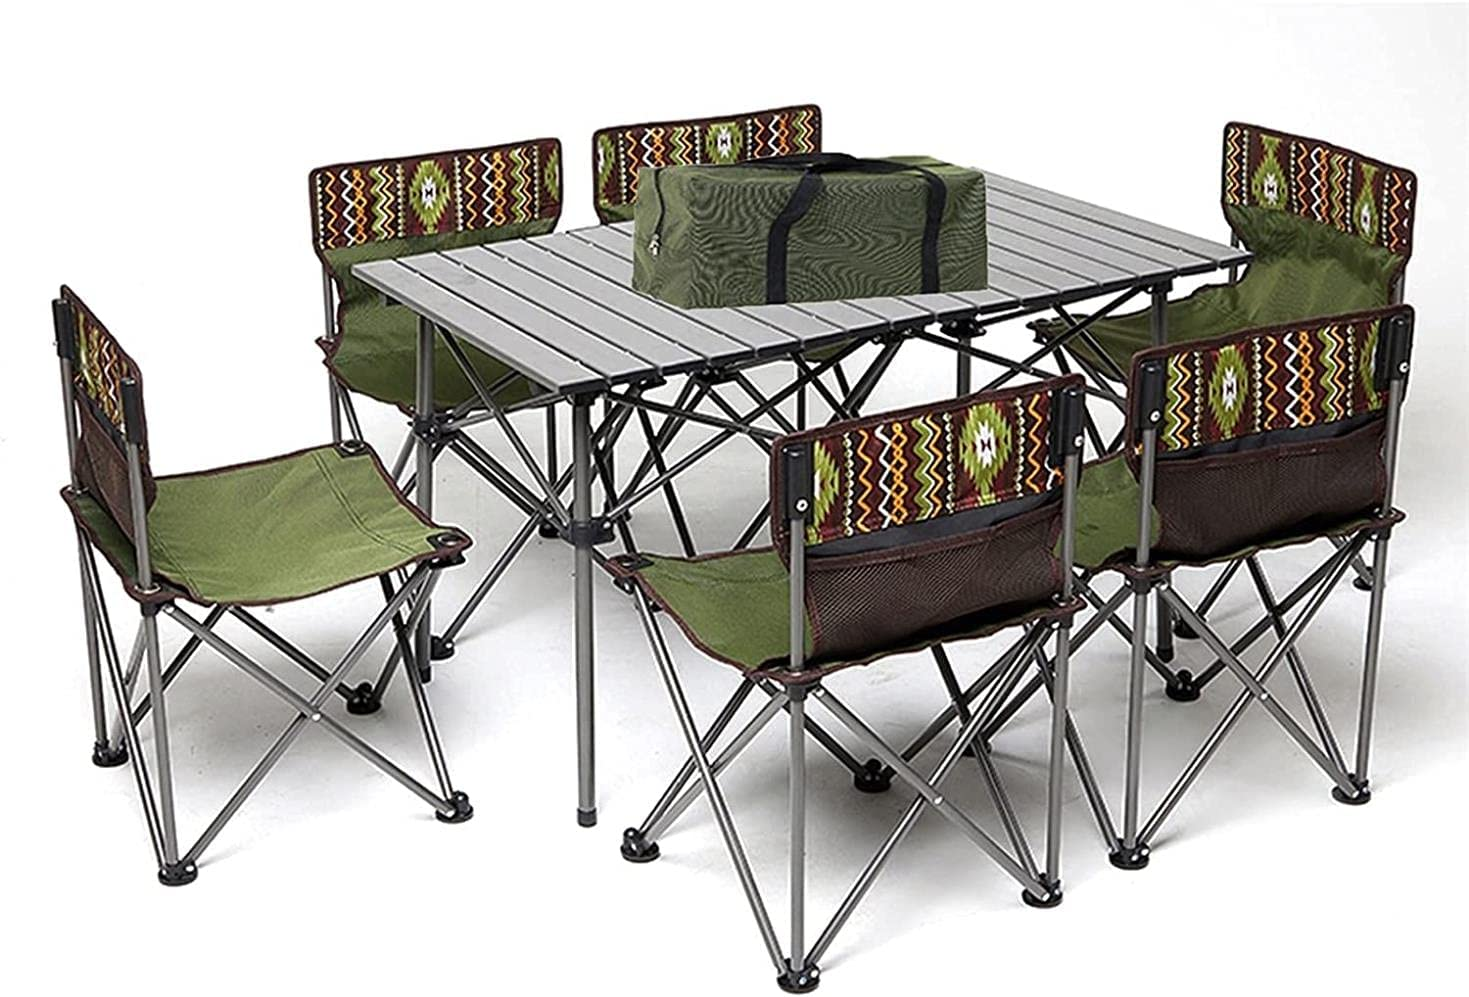 Xkun High material Camping Table and Chair Large Safety and trust Garden Outdoor Folding